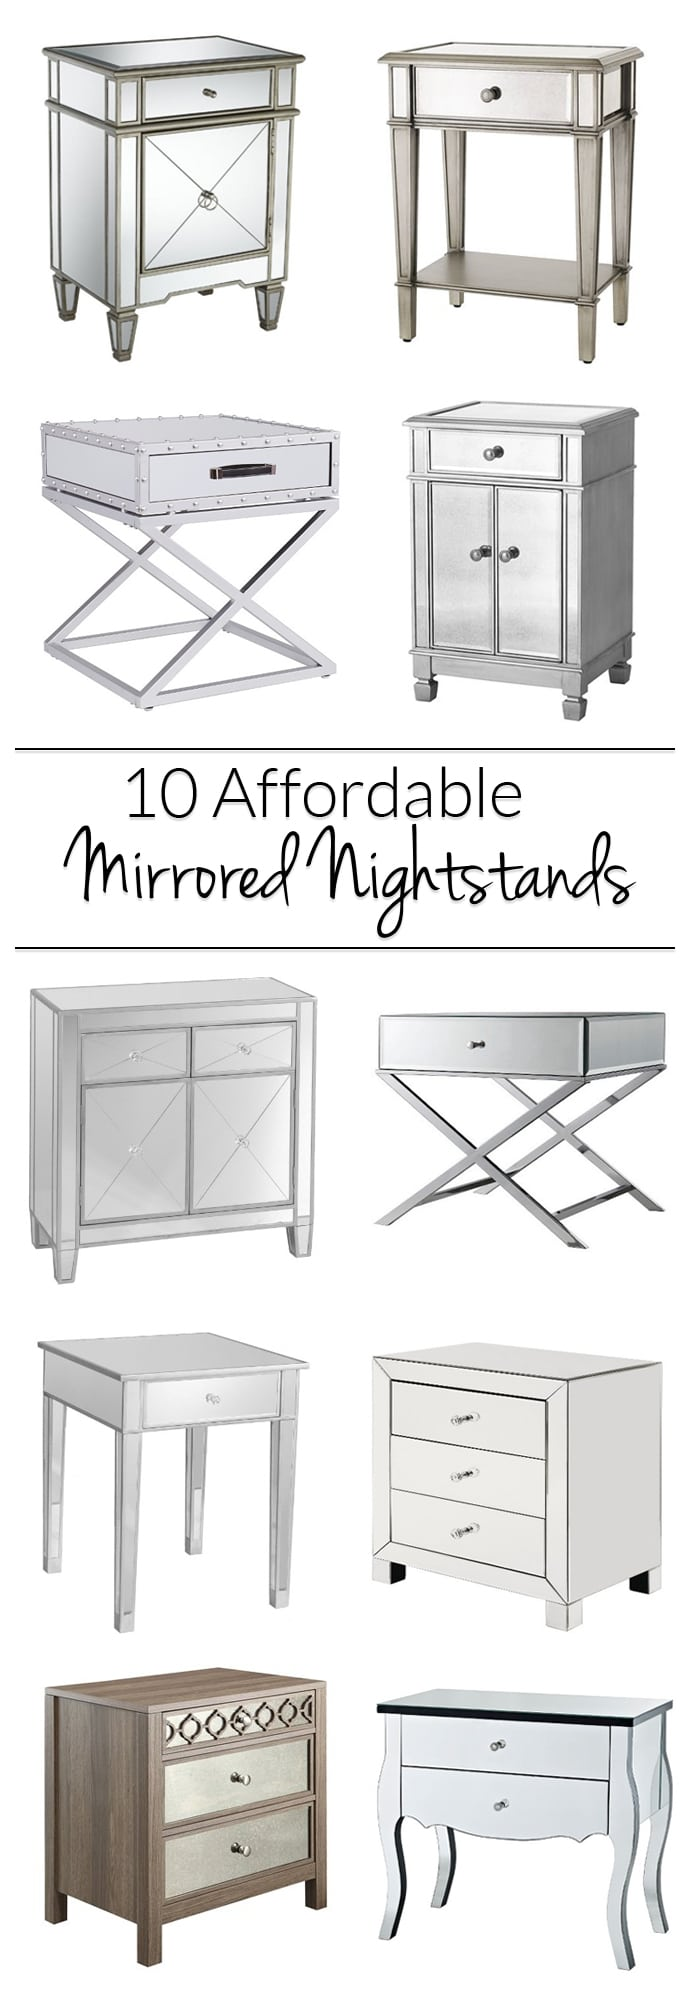 Cool Affordable Mirrored Nightstand Get a mirrored nightstand without breaking the bank! All these glam options  for your bedroom